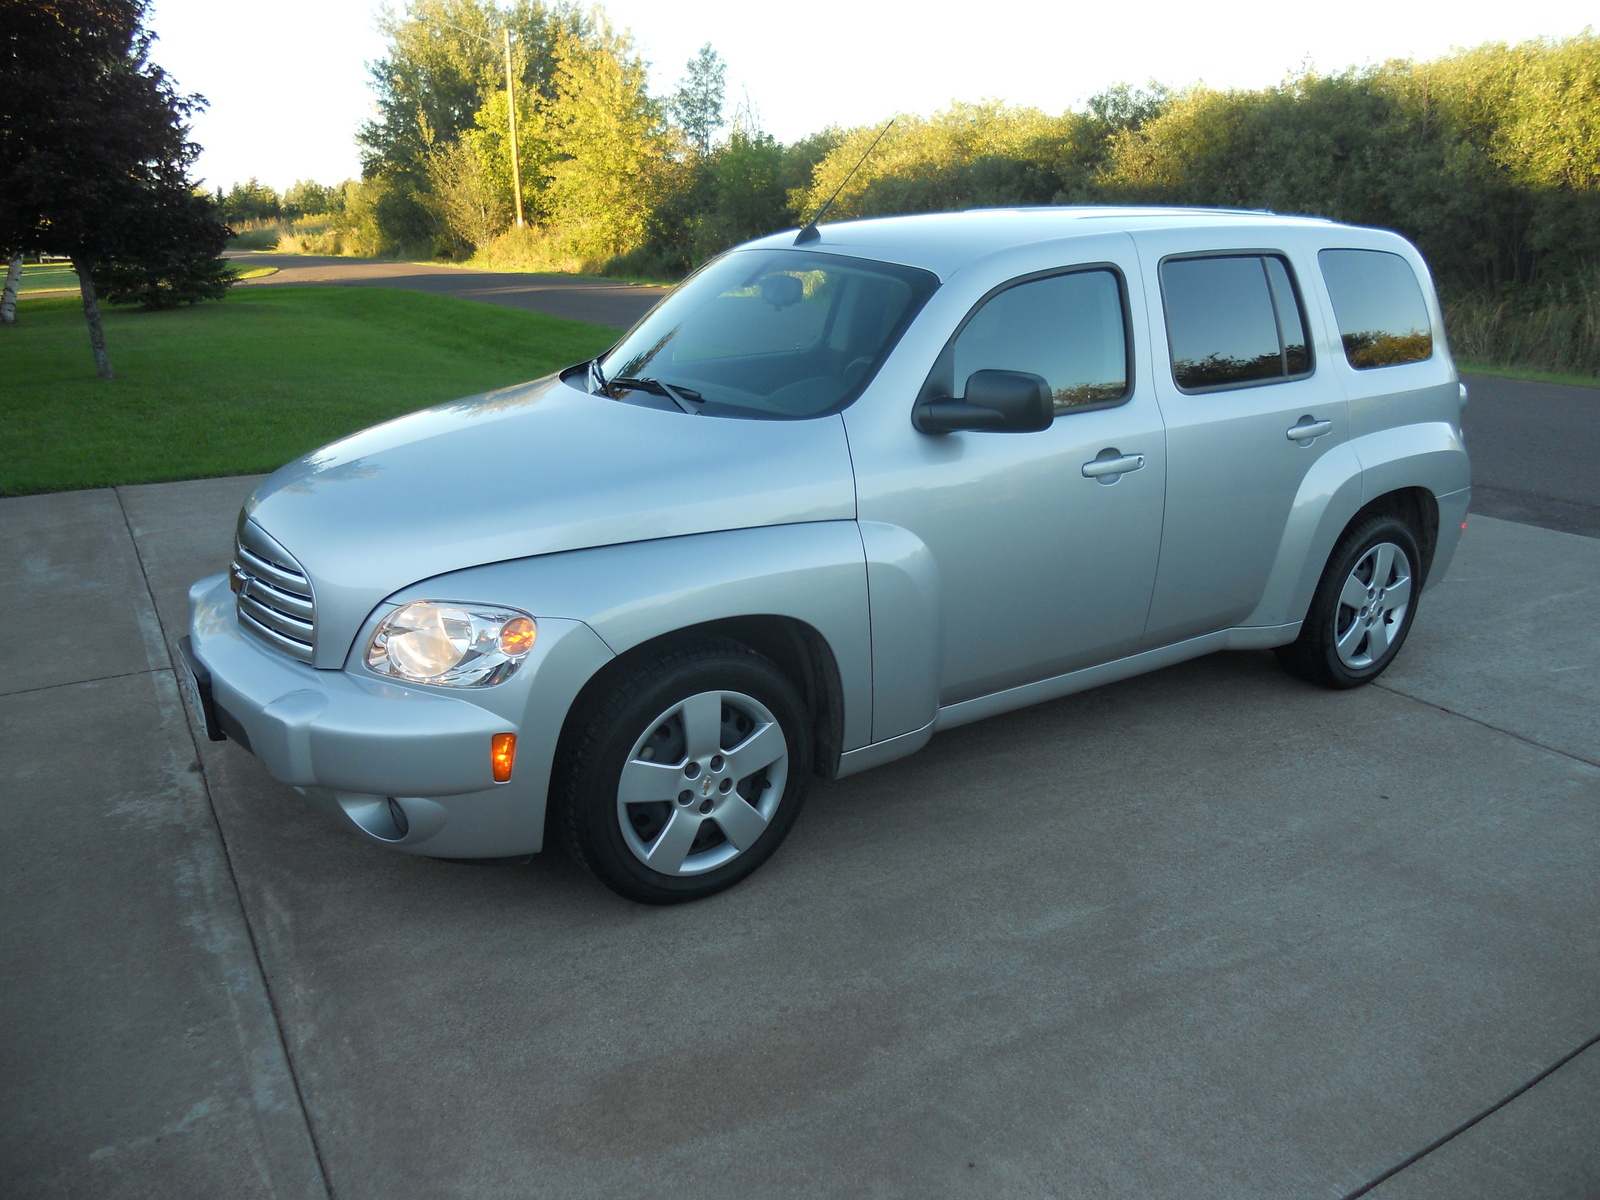 Chevy Hhr Used Car For